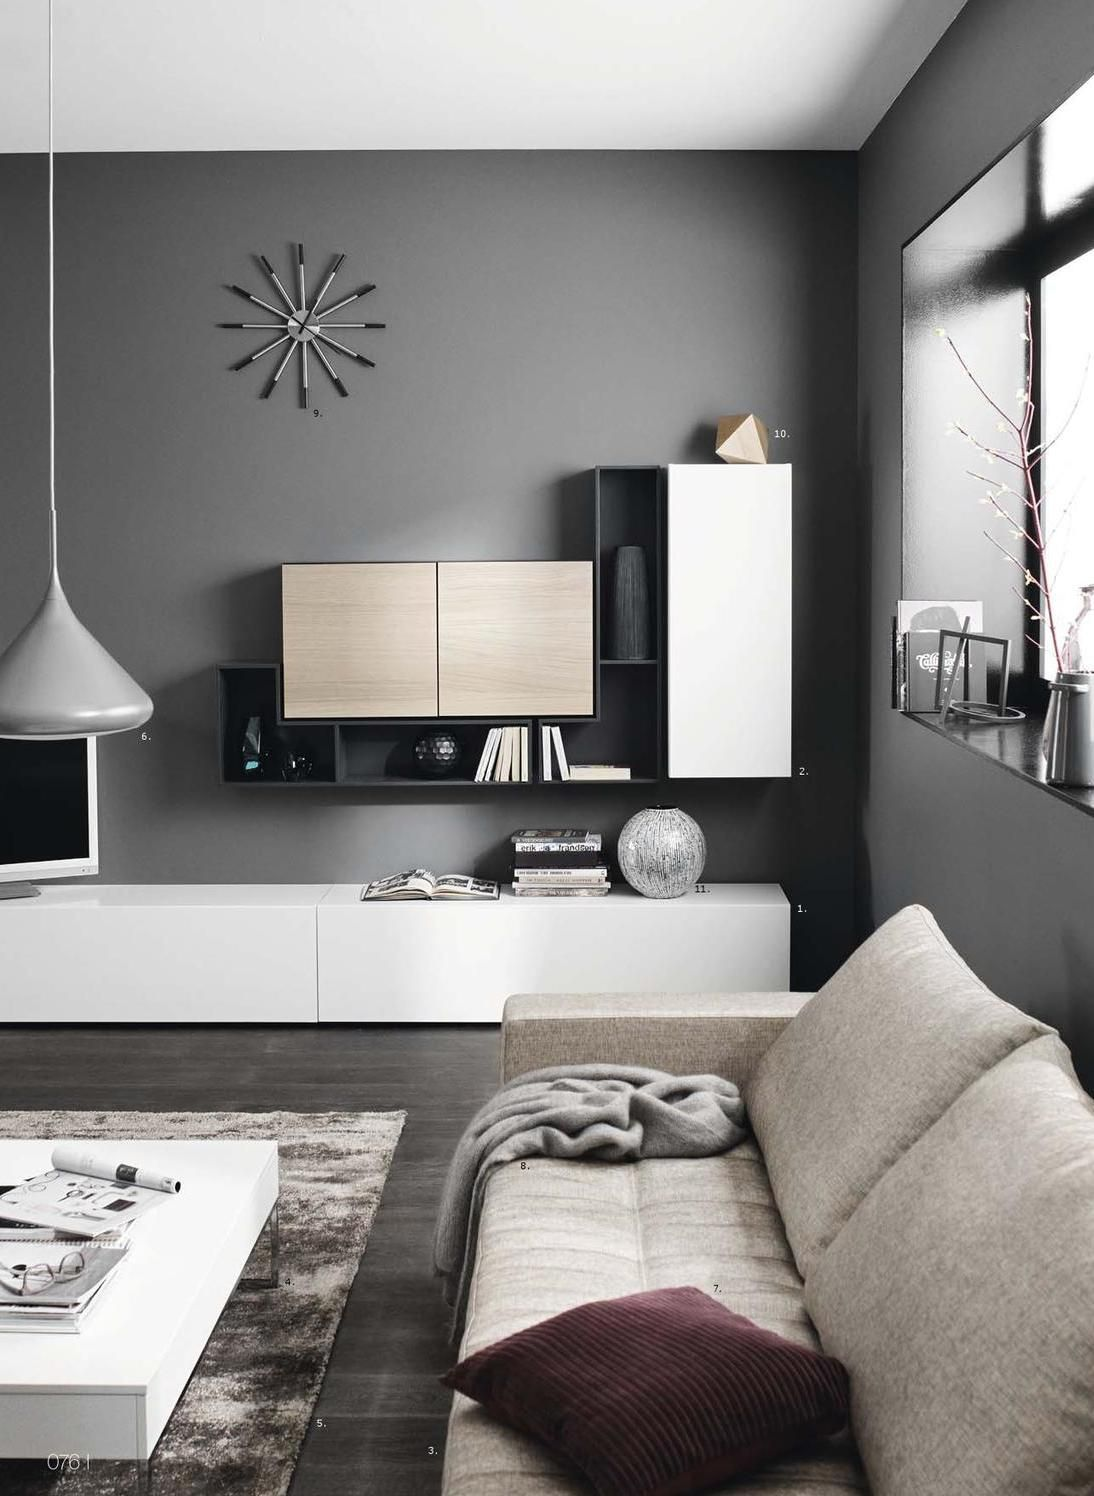 boconcept nappali pinterest mueble tv tv y casas modernas. Black Bedroom Furniture Sets. Home Design Ideas